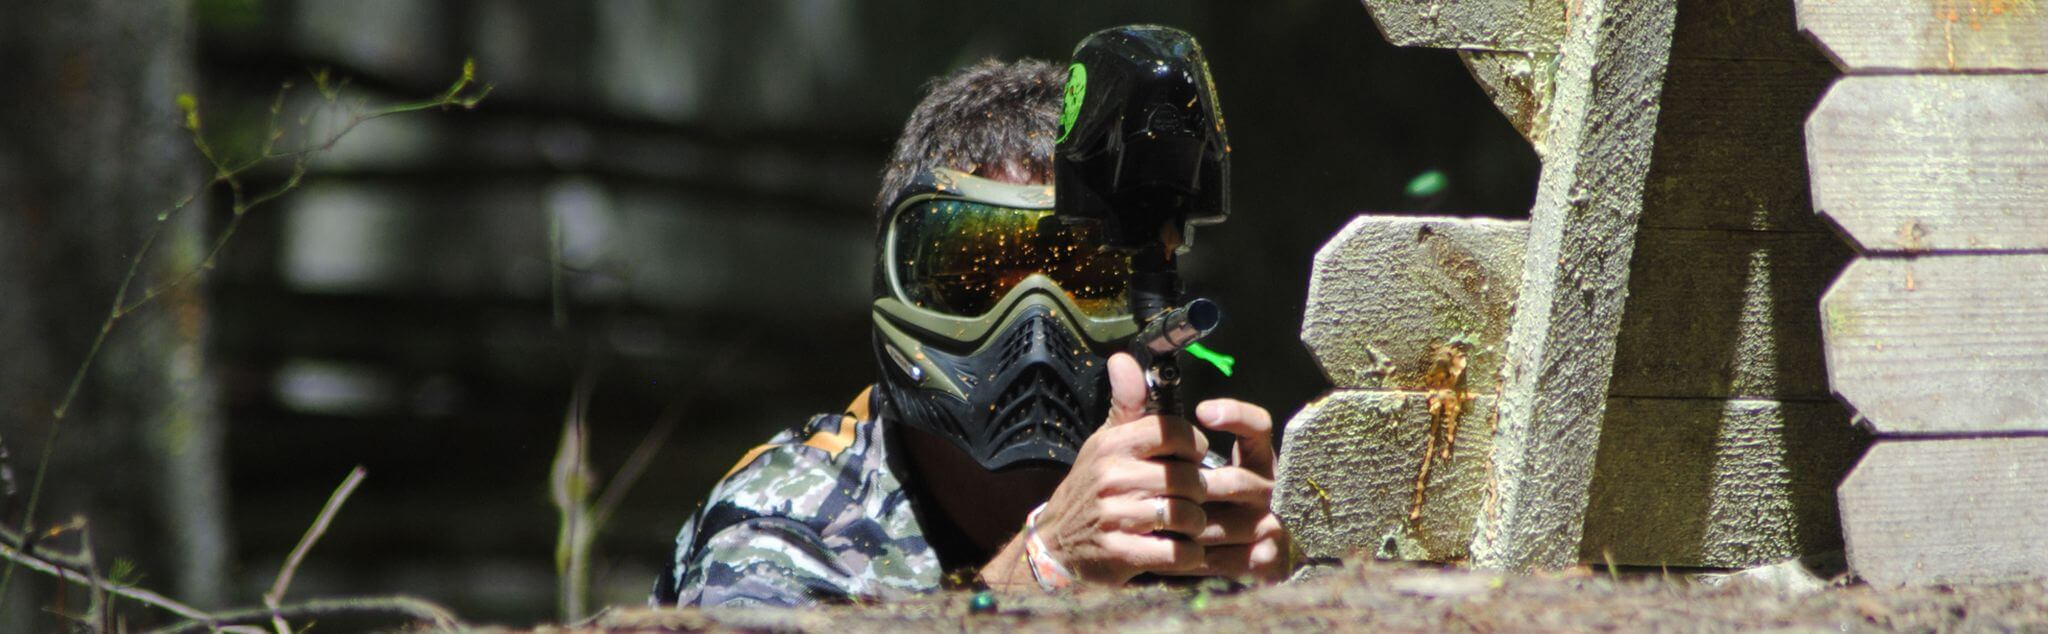 Paintball en Tenerife